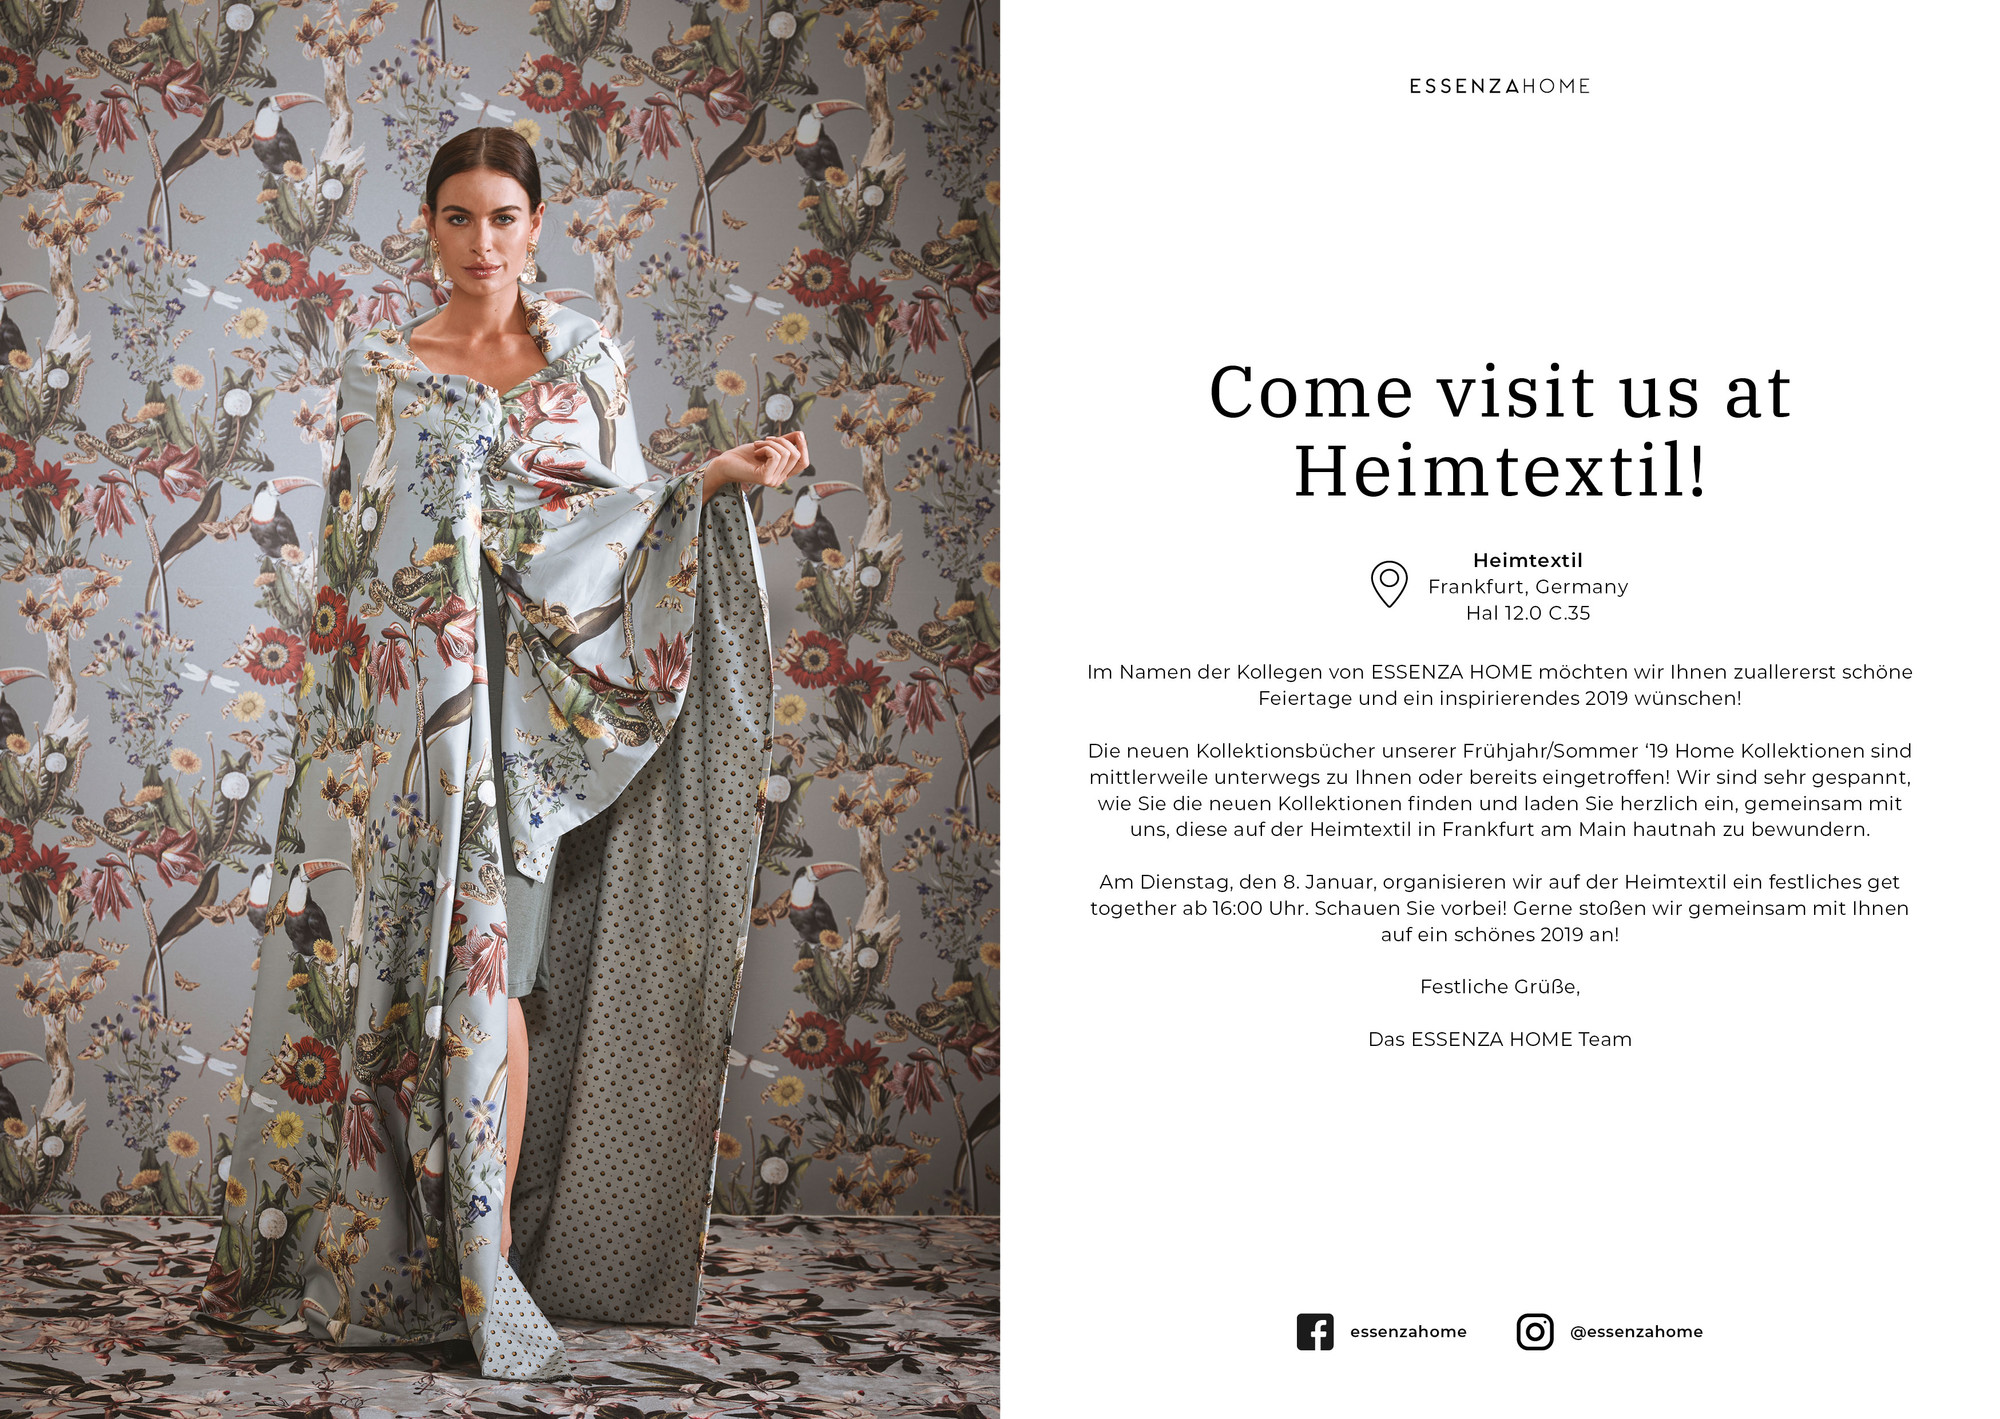 Come visit us at Heimtextil